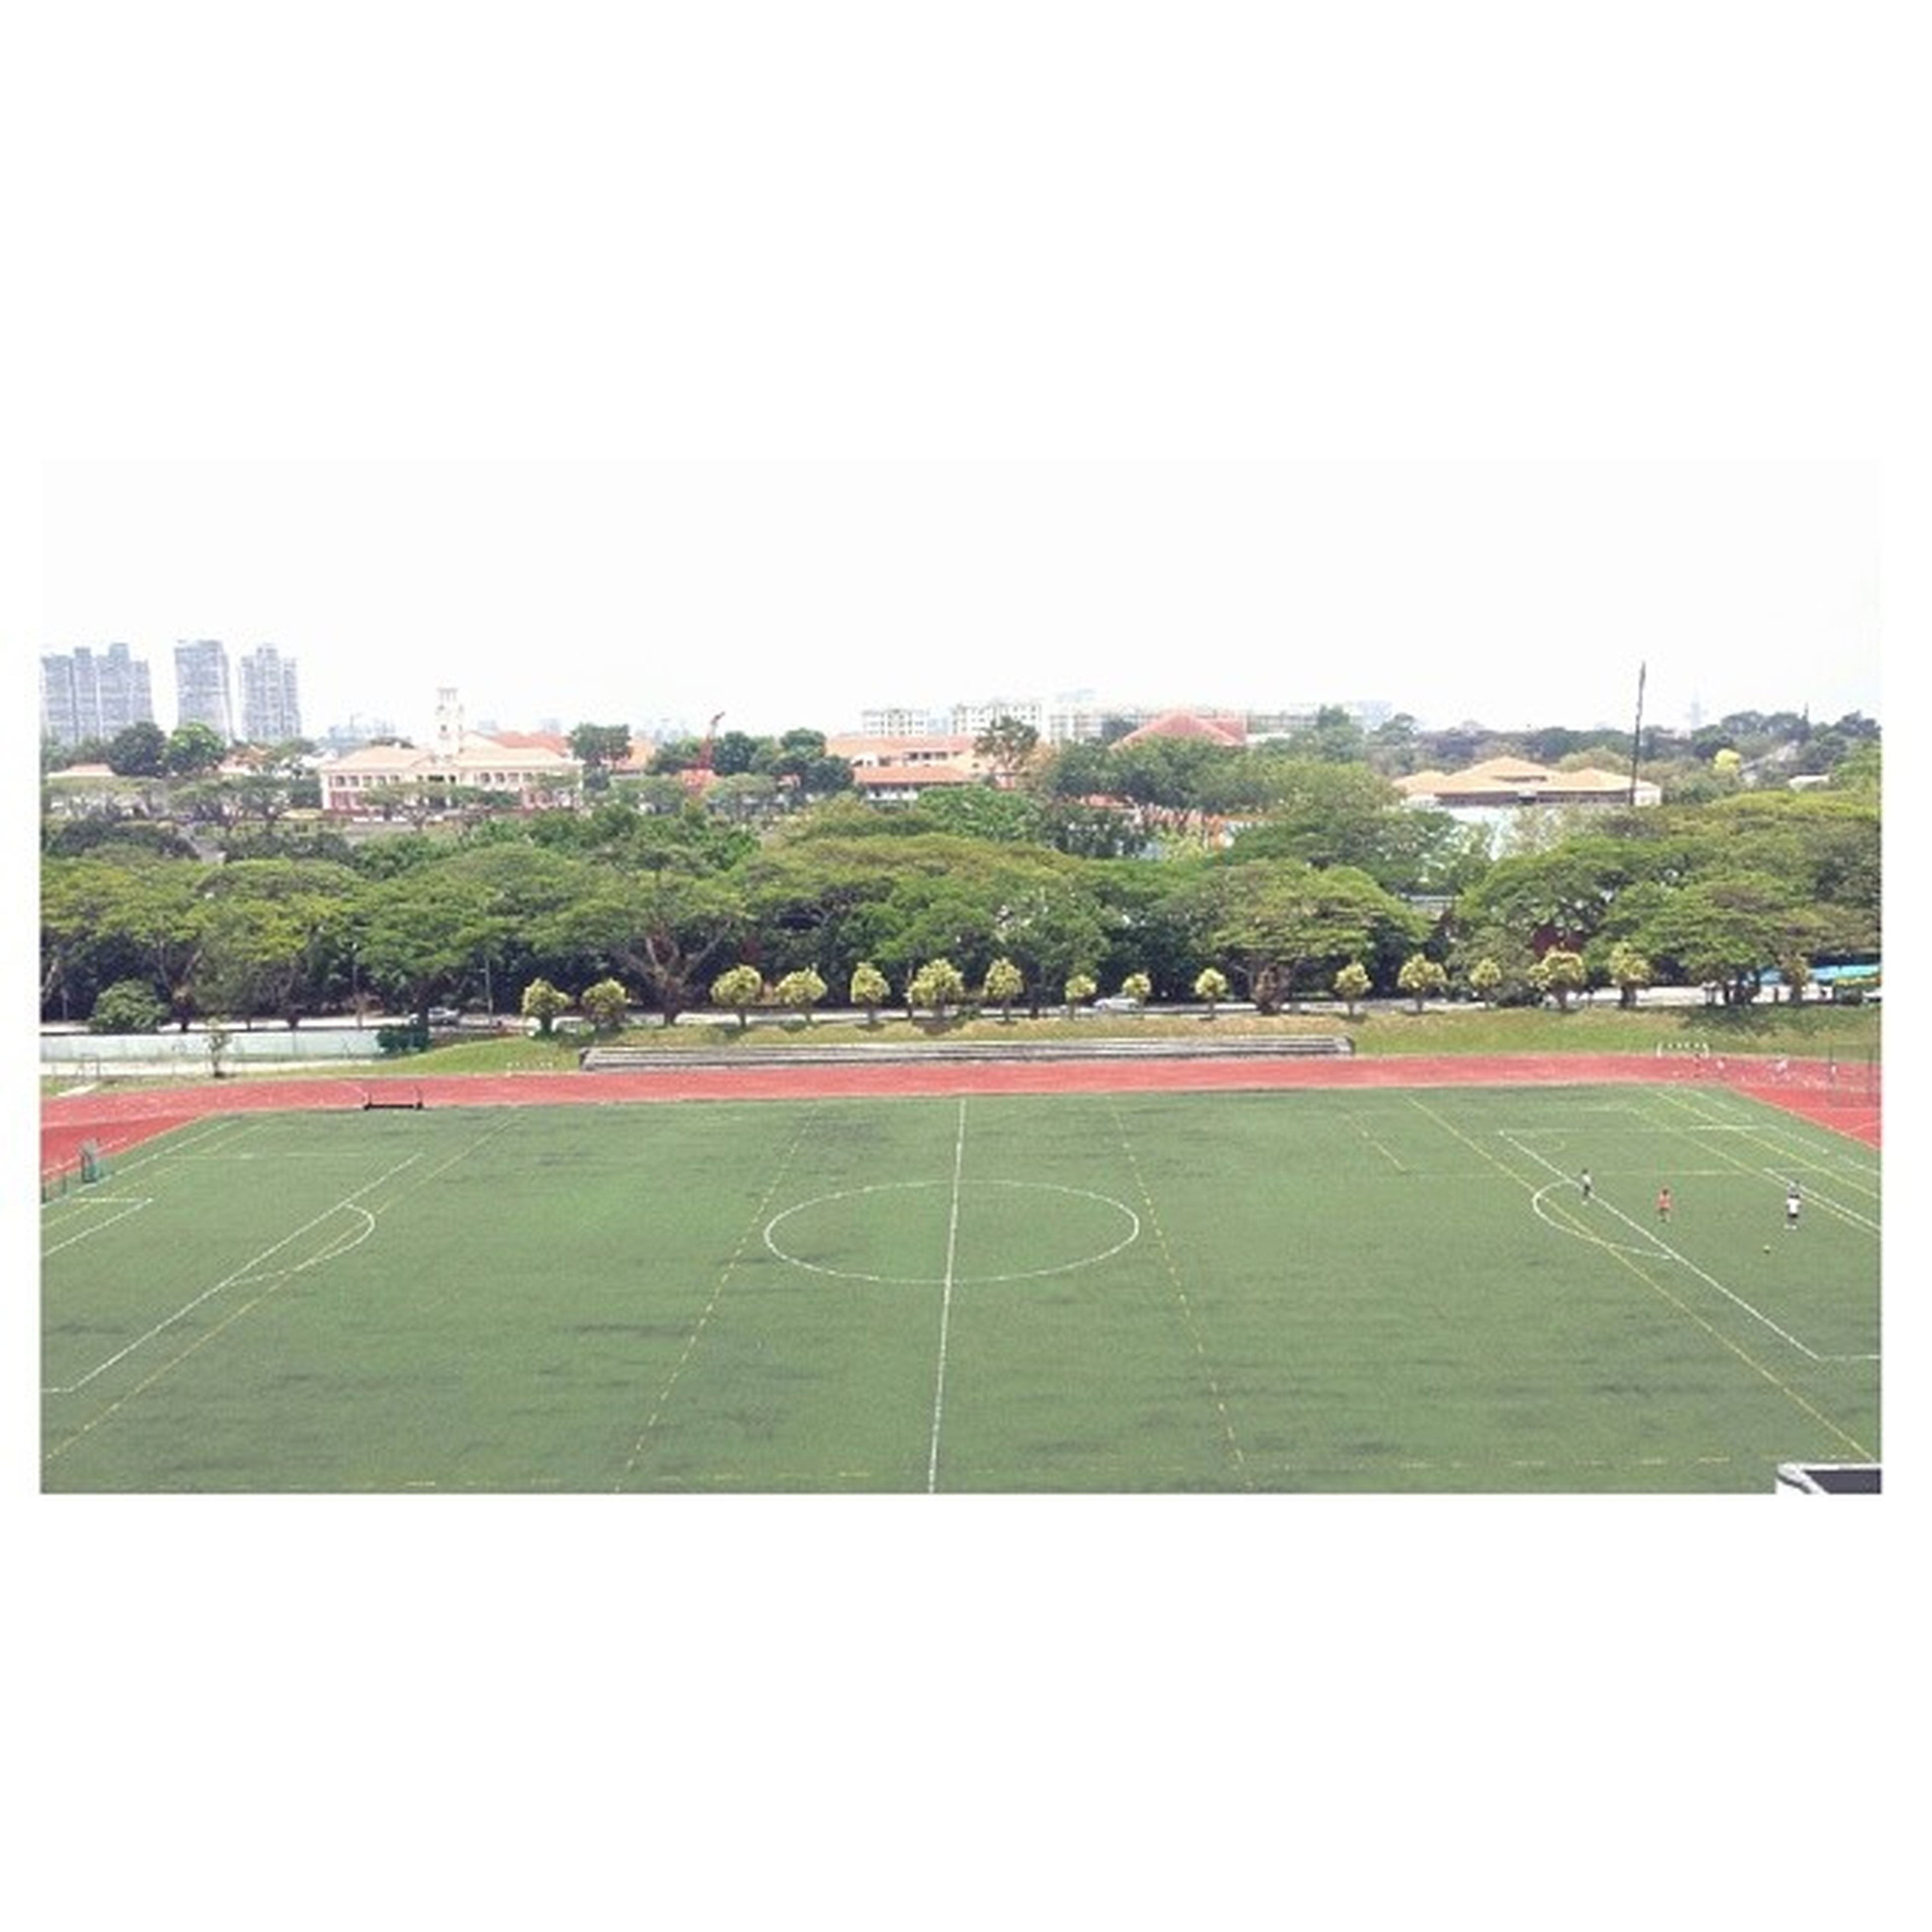 nj school field is fab. . . just a girl trying to find a place in this world